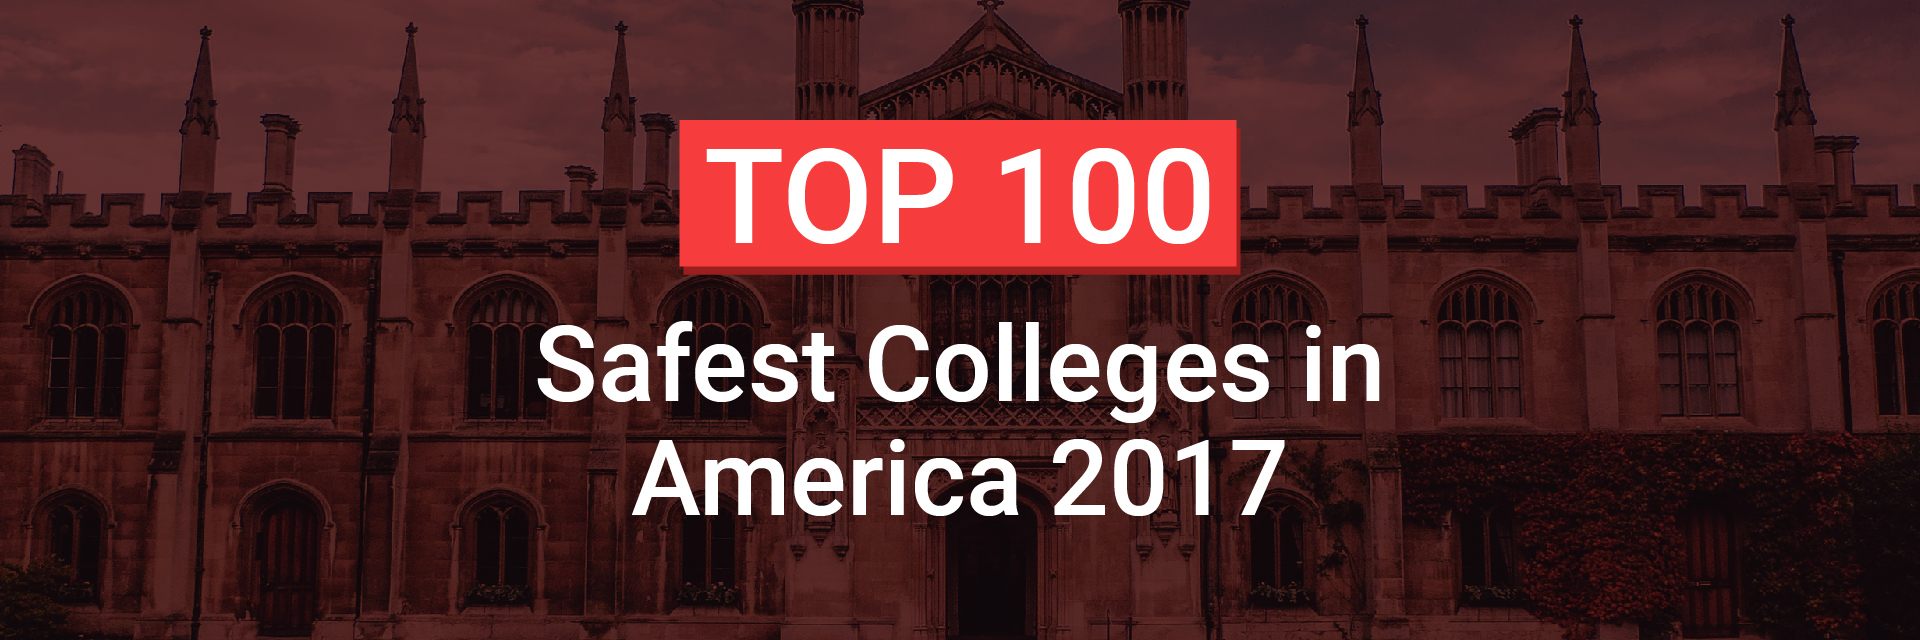 Top 100 Safest Colleges In America National Council For Home